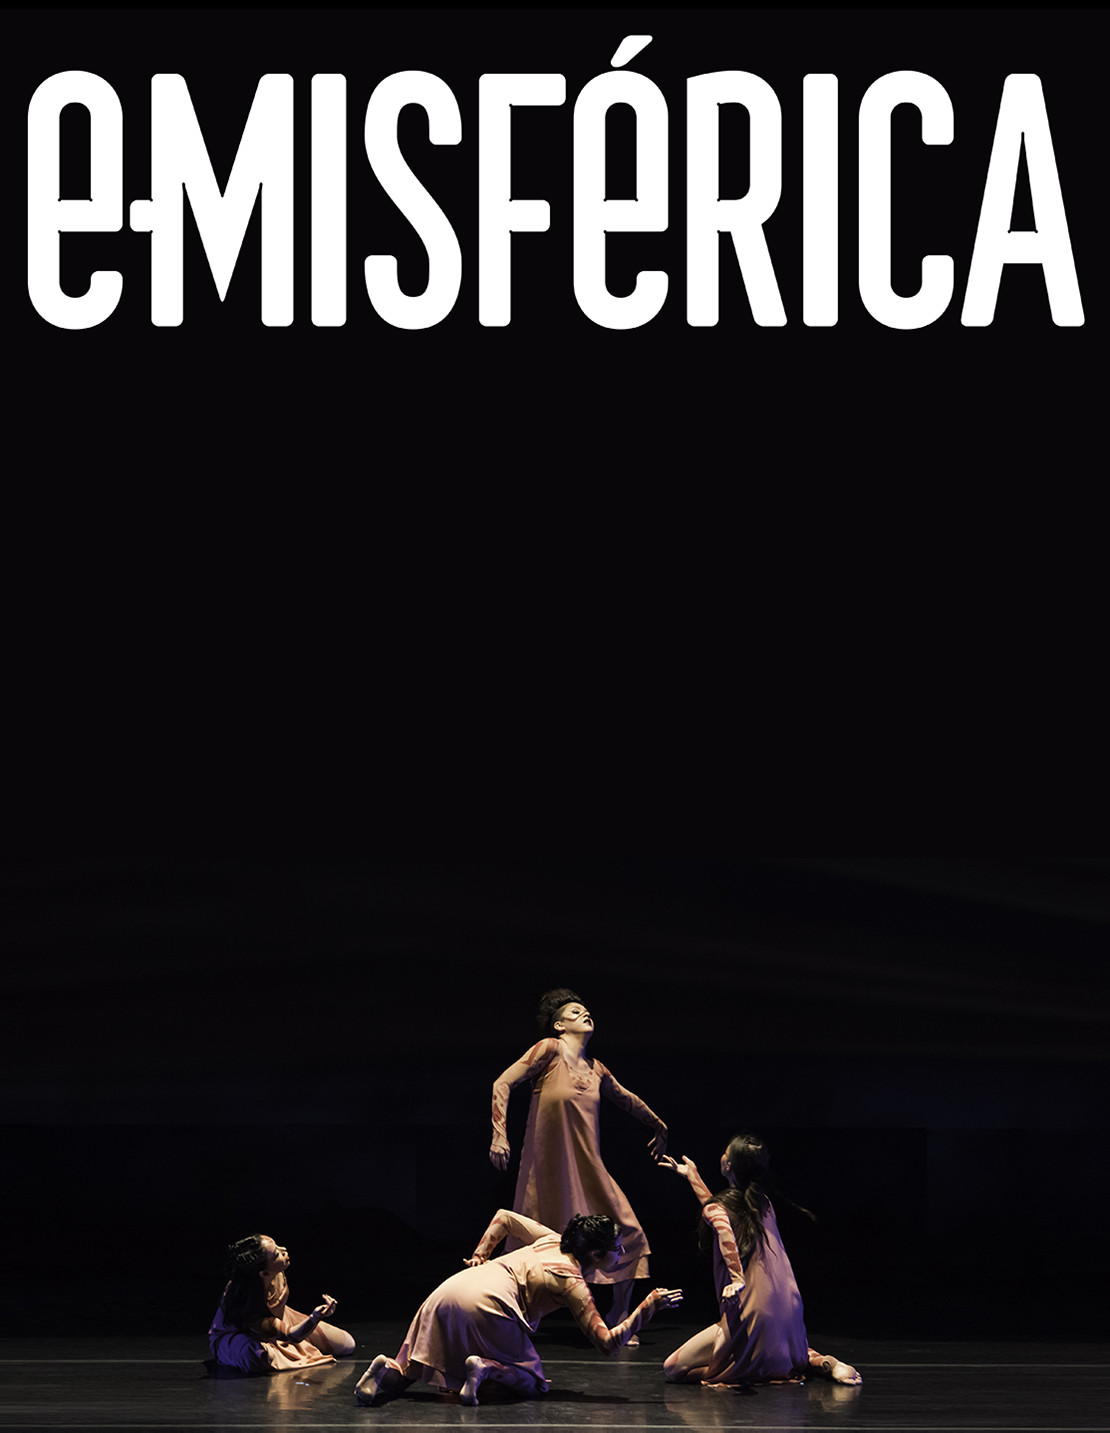 emisférica 2.1 Aboriginal Performance